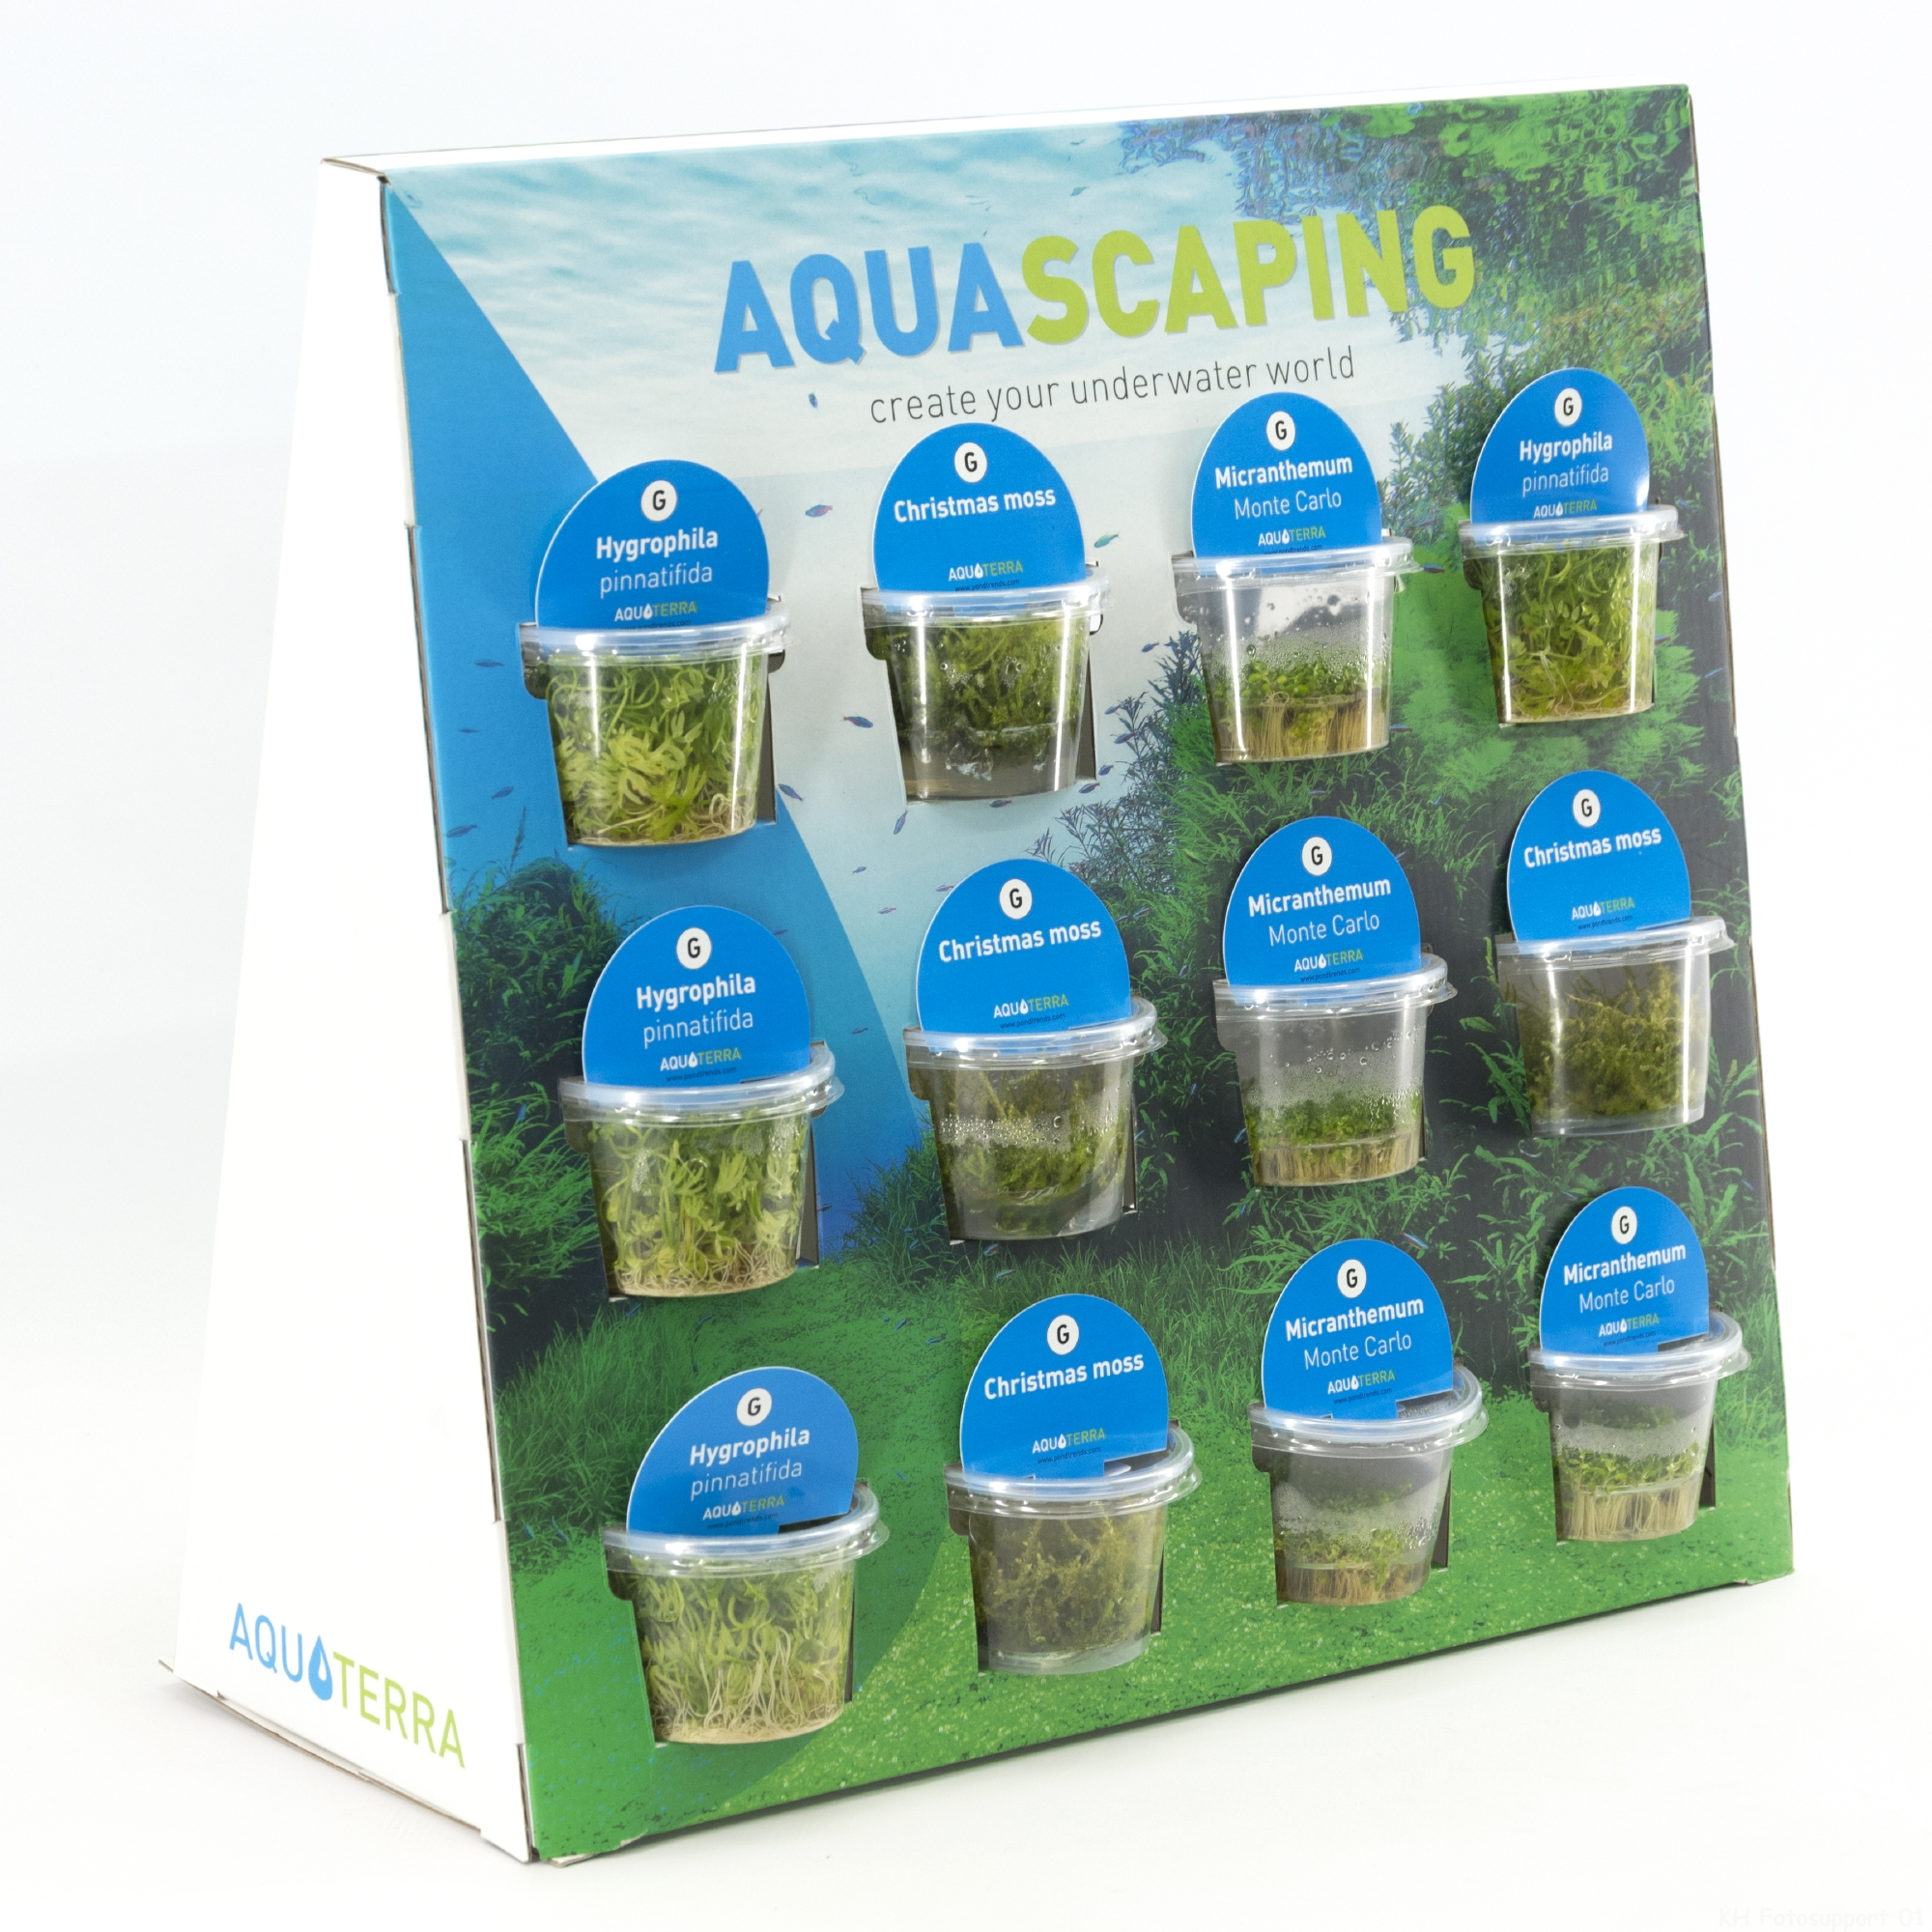 Aquascaping Display 20180320115600